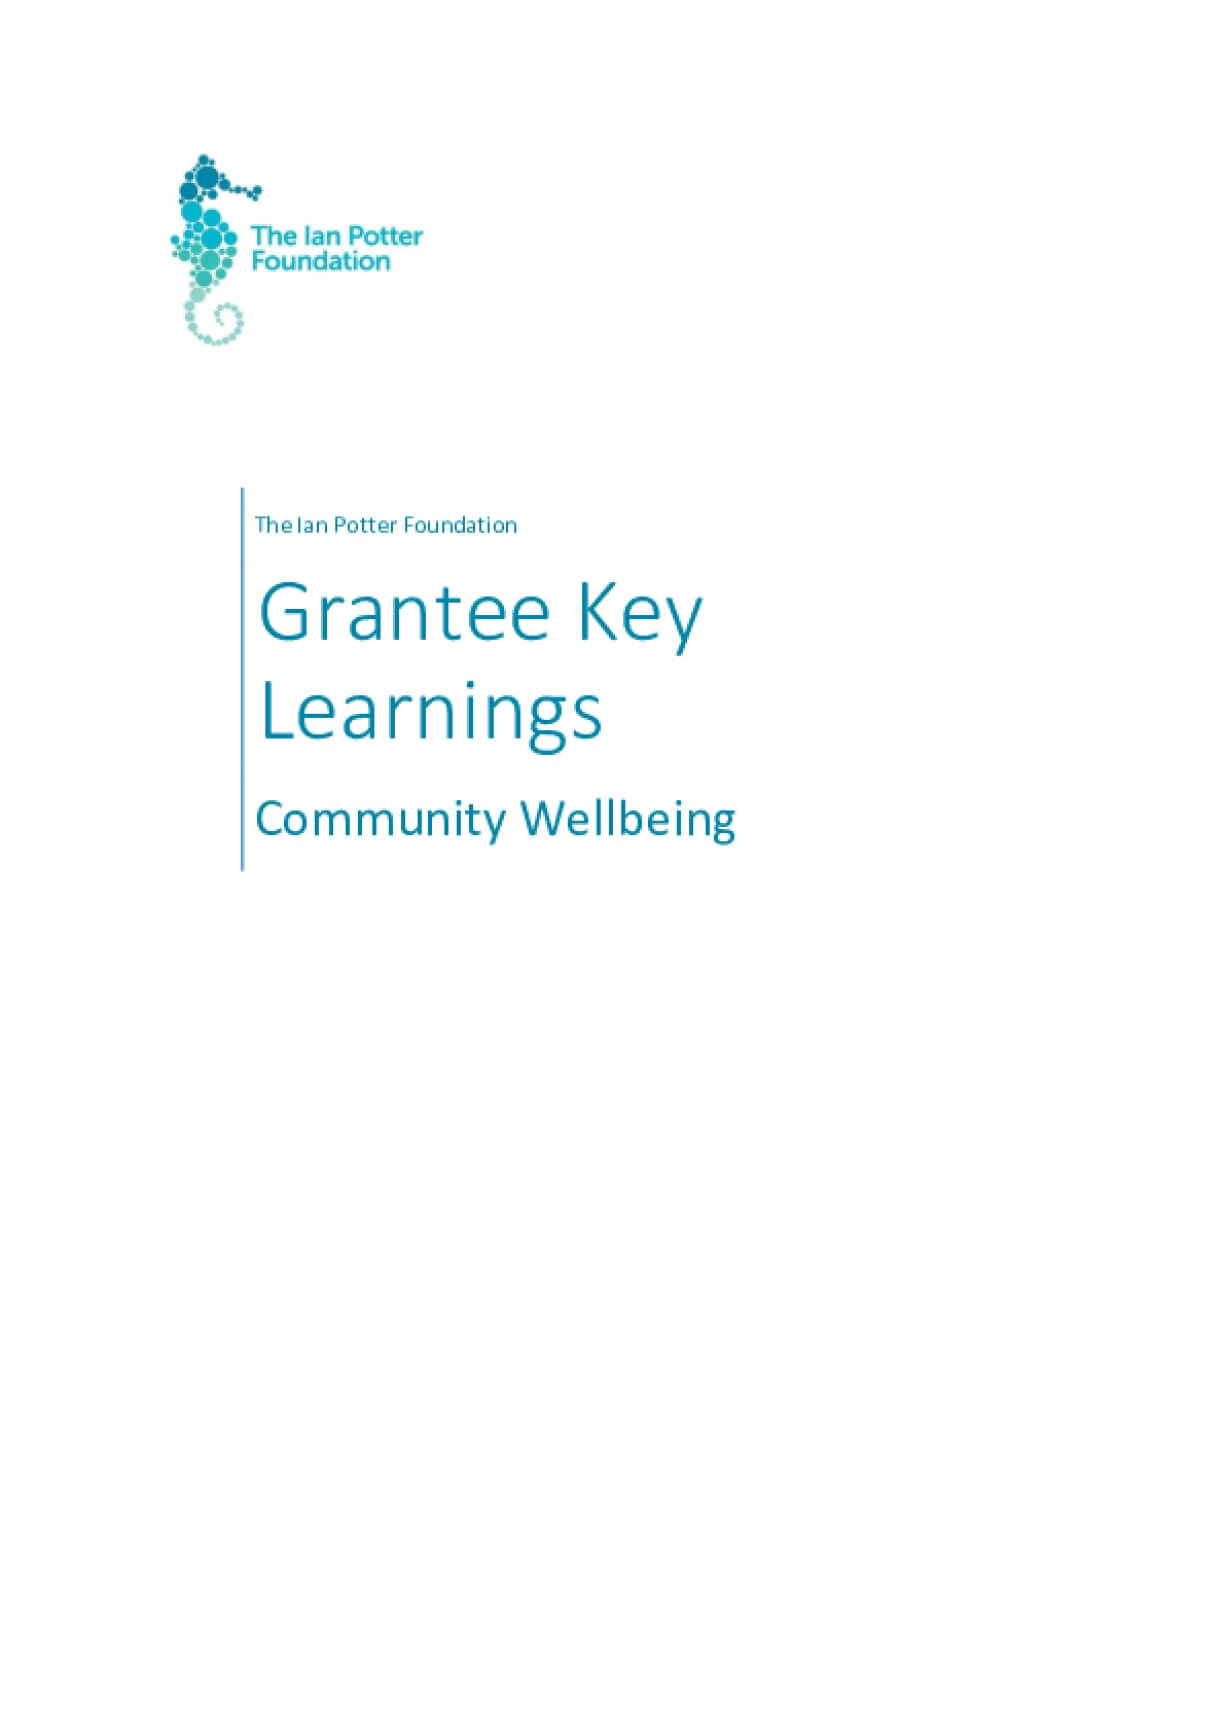 The Ian Potter Foundation Grantee Learnings - Community Wellbeing